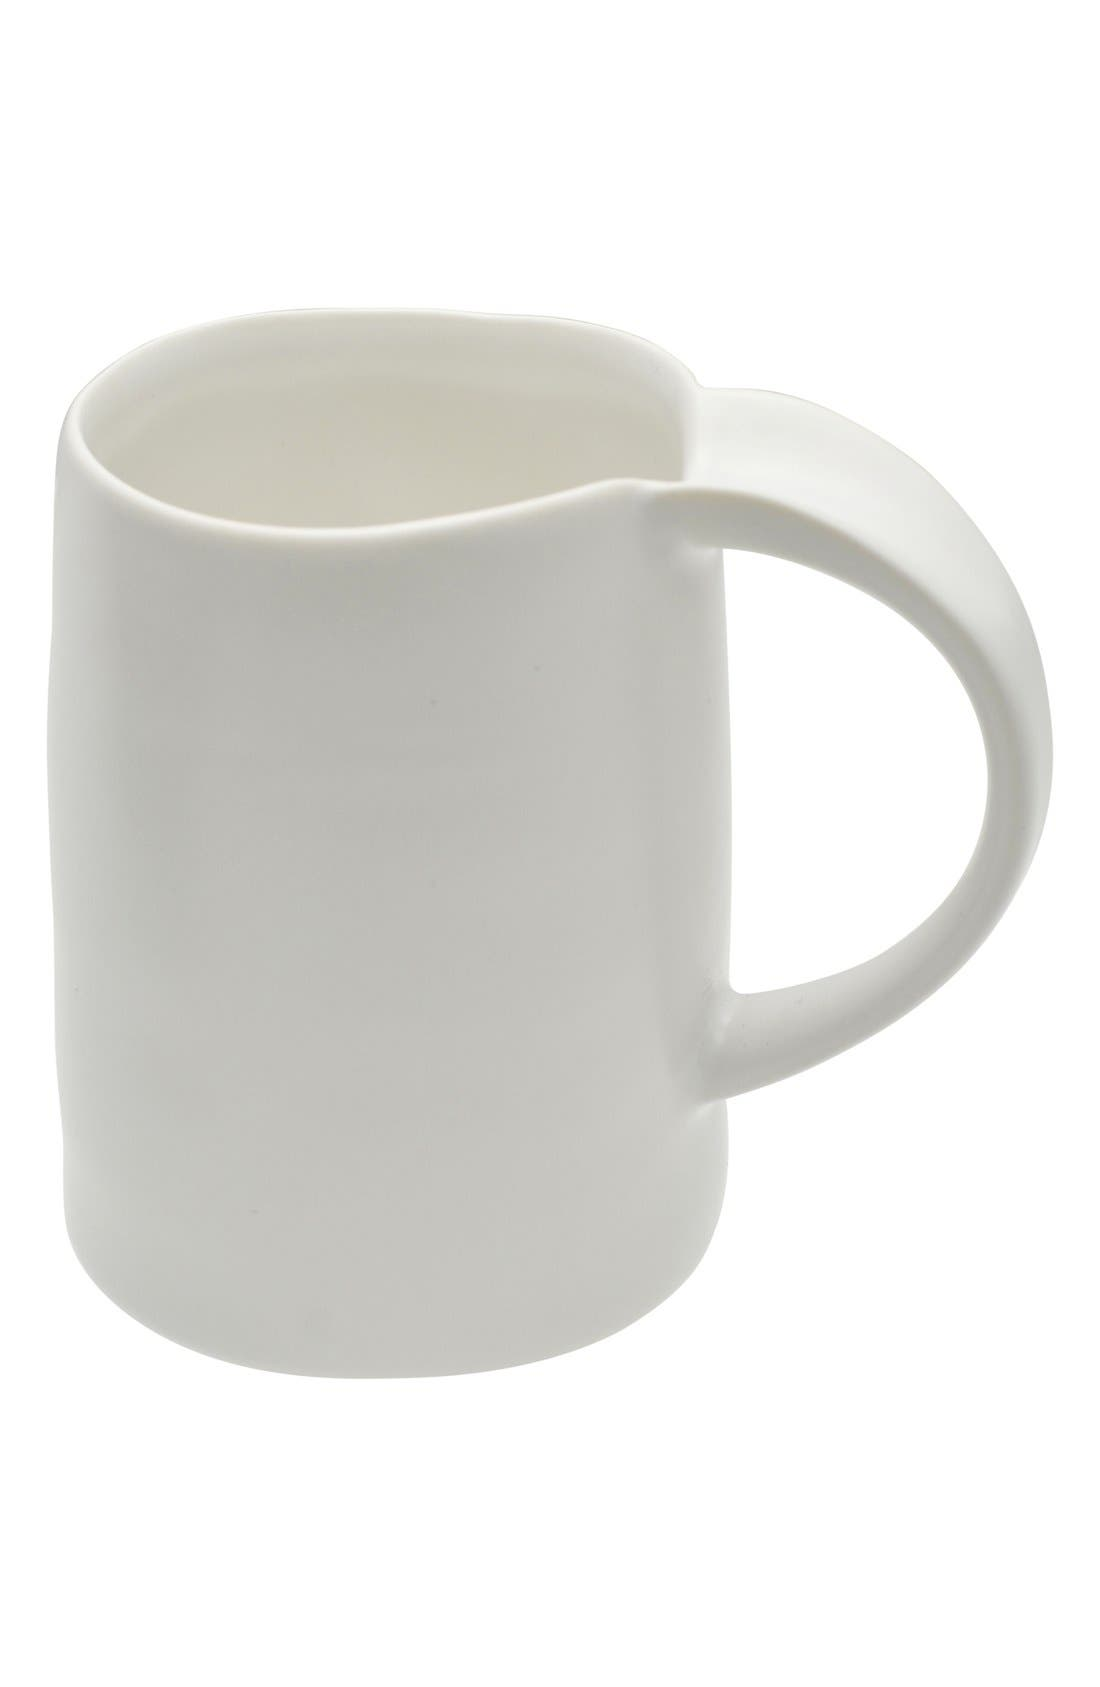 'Ripple' Porcelain Mugs,                             Alternate thumbnail 2, color,                             100